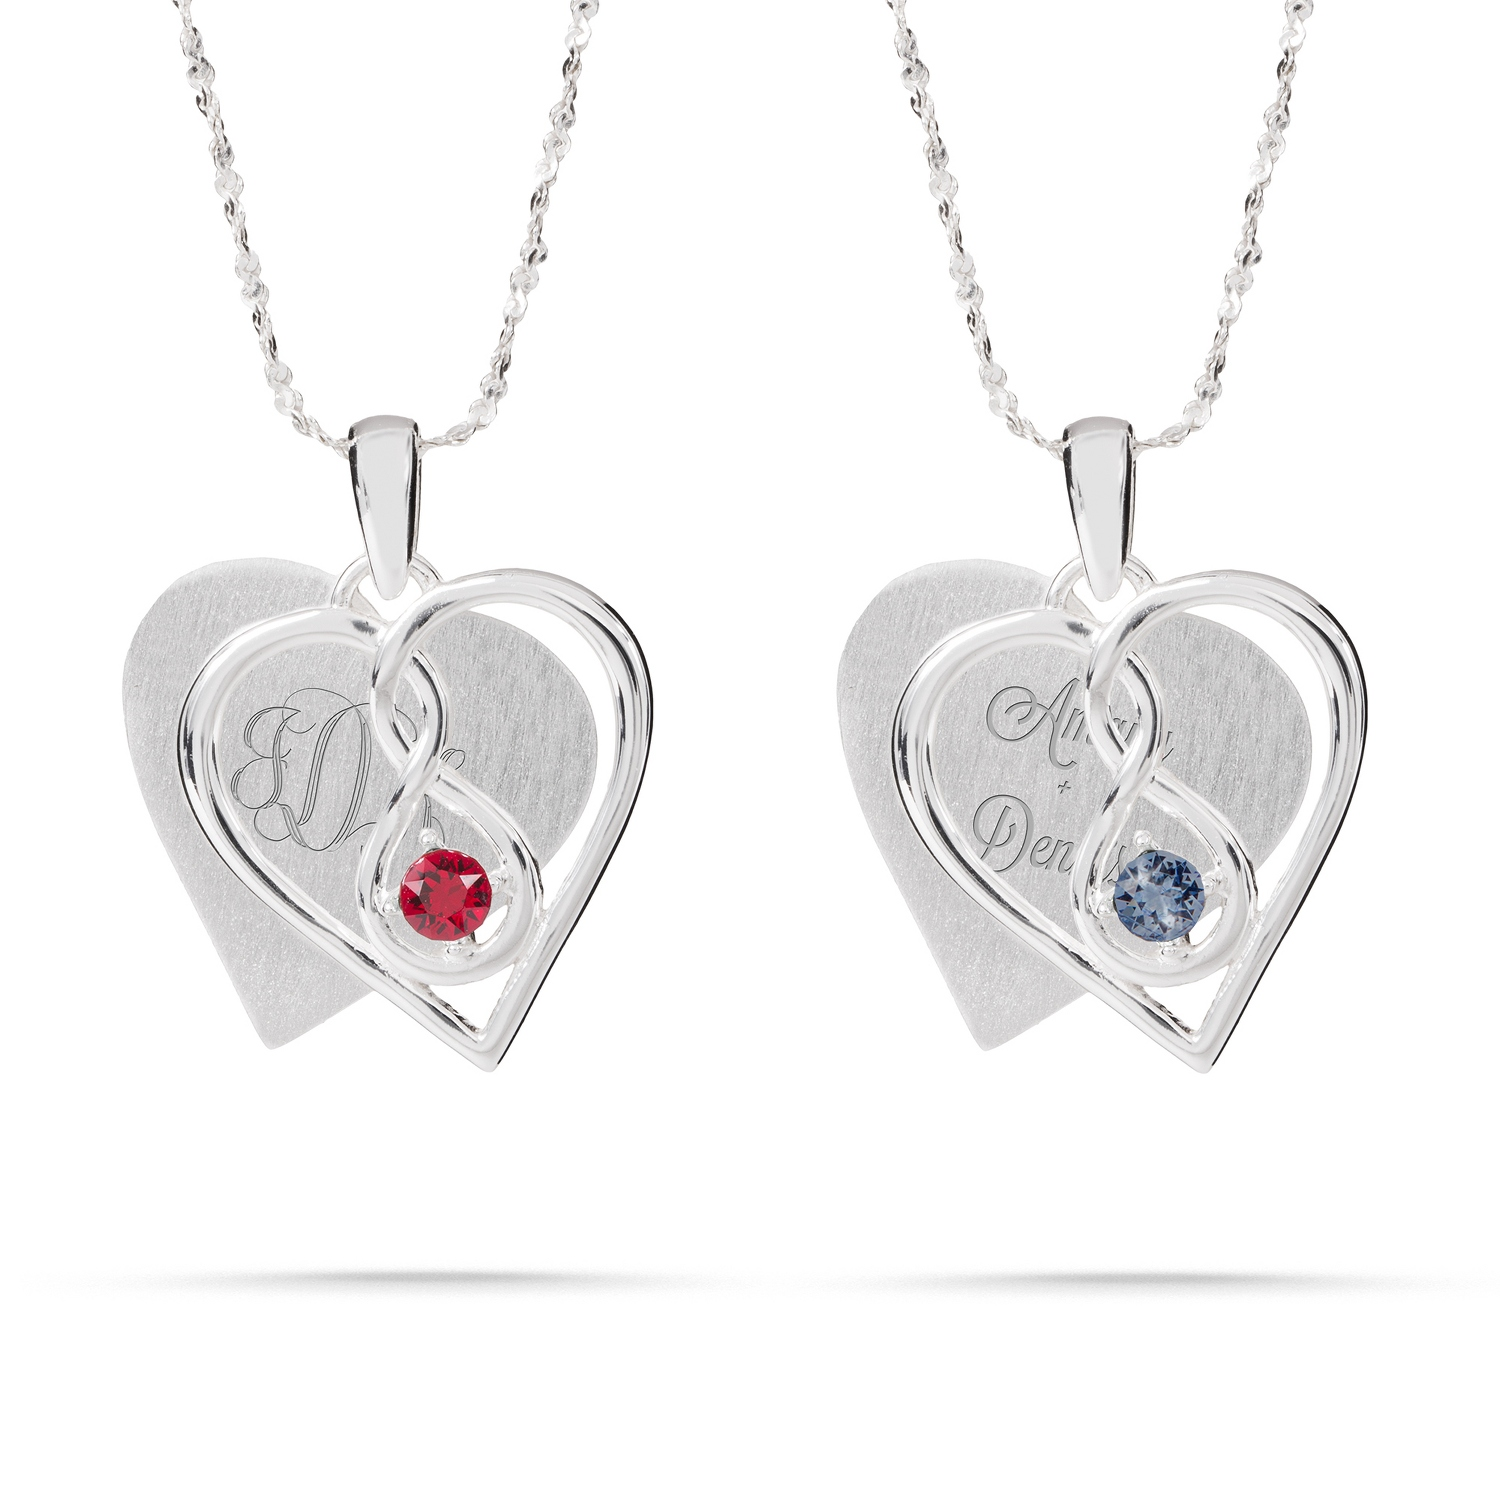 Silver Studio - June Birthstone Heart Necklace and Card 6sdlpeQZhi